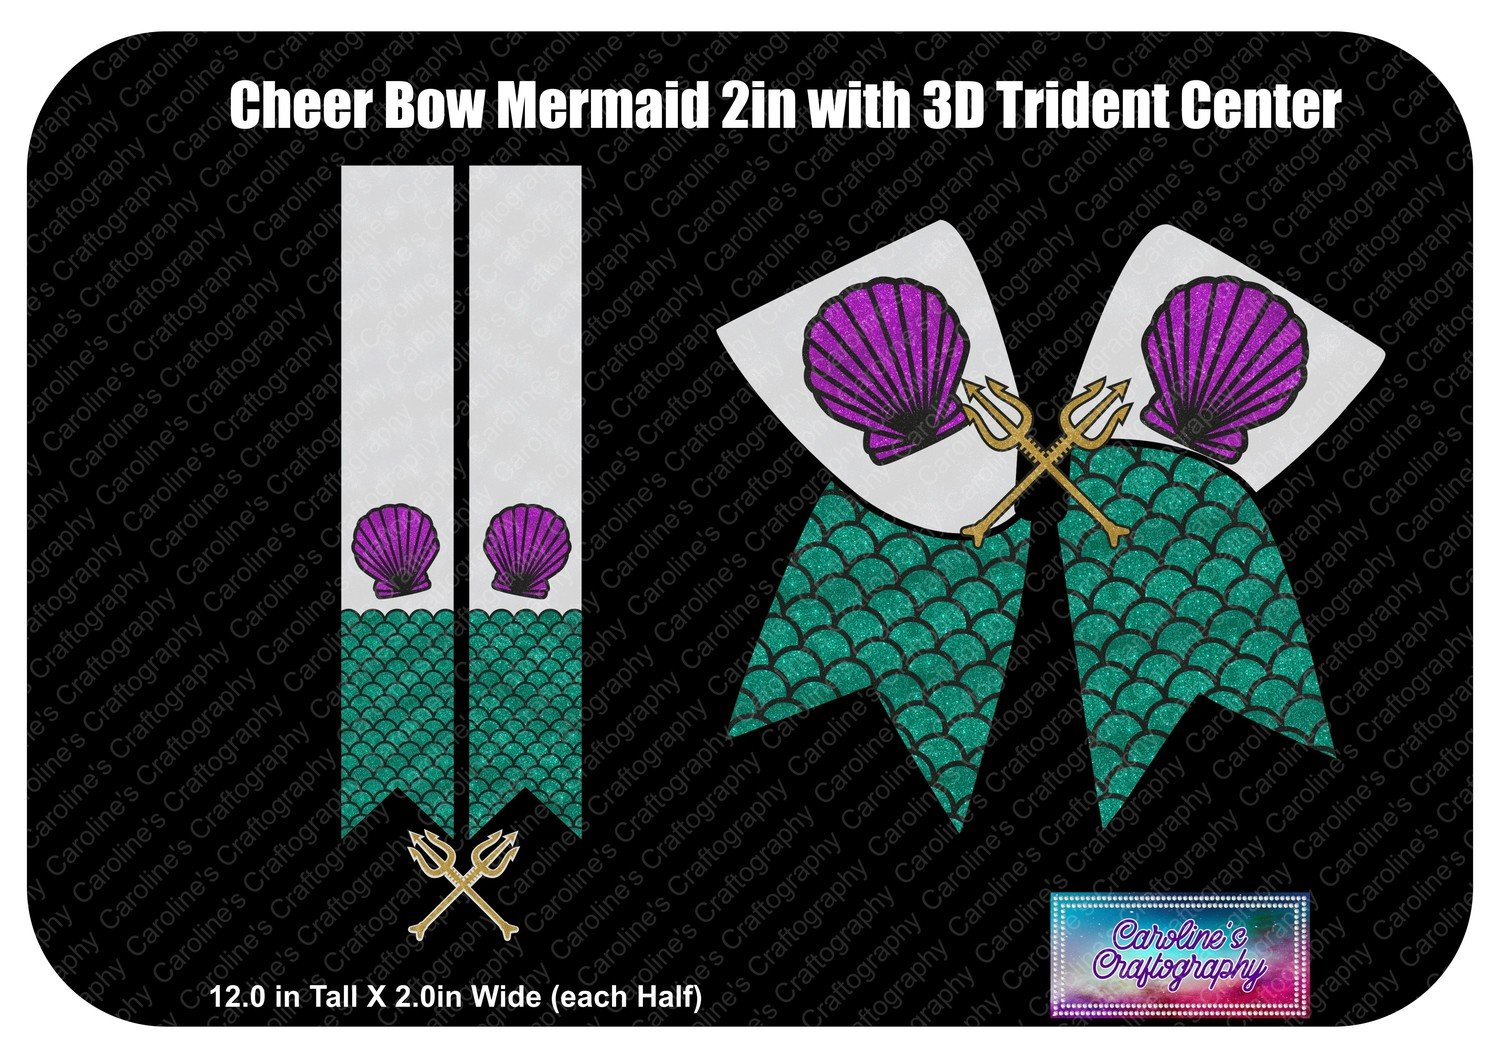 Cheer Bow Mermaid 3D Trident Center 2in Vinyl